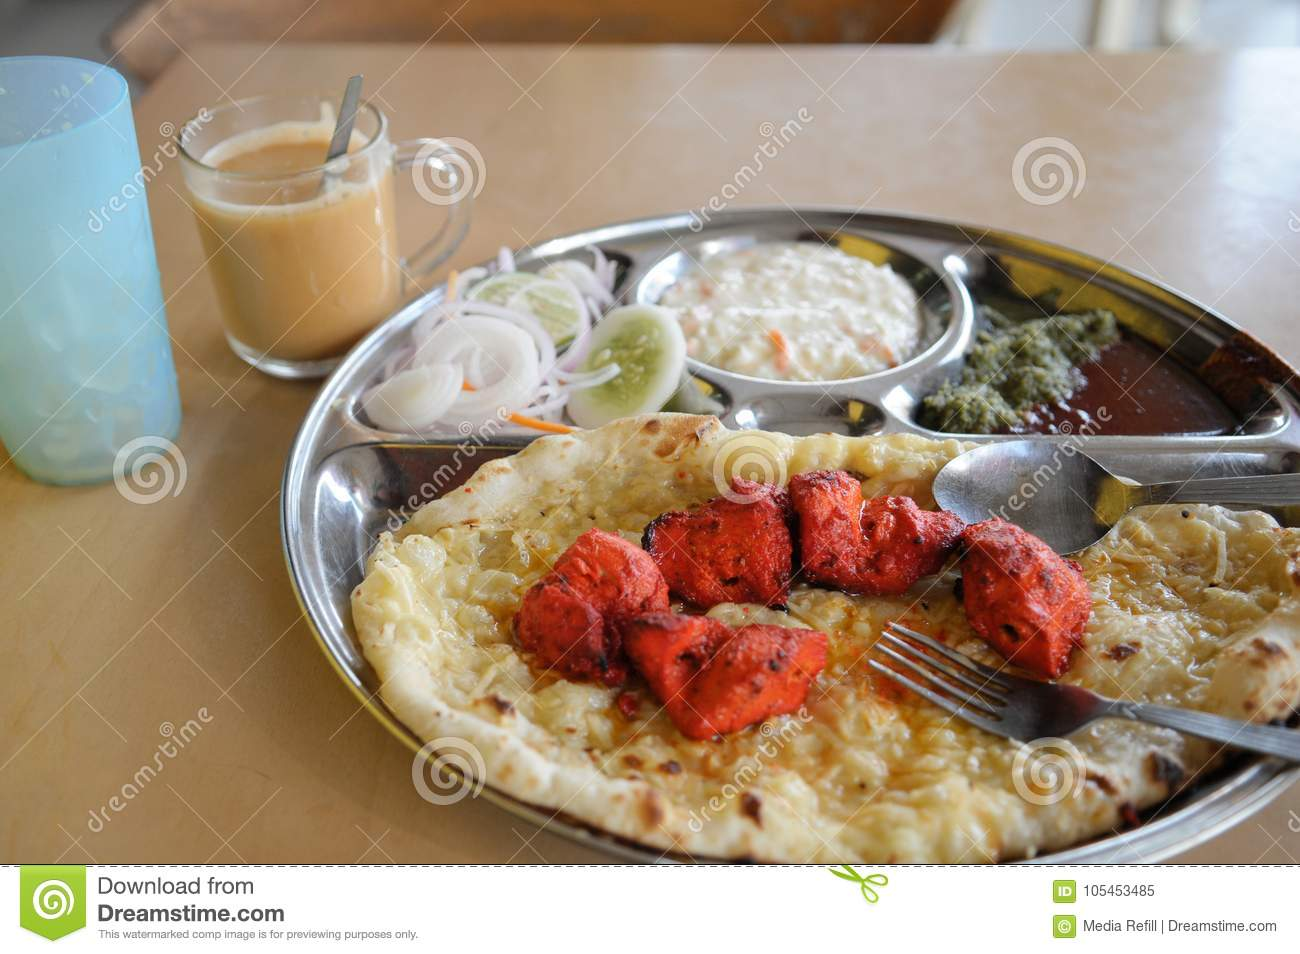 Cuisine India India Lunch Set With Indian Cuisine Stock Image Image Of Plate